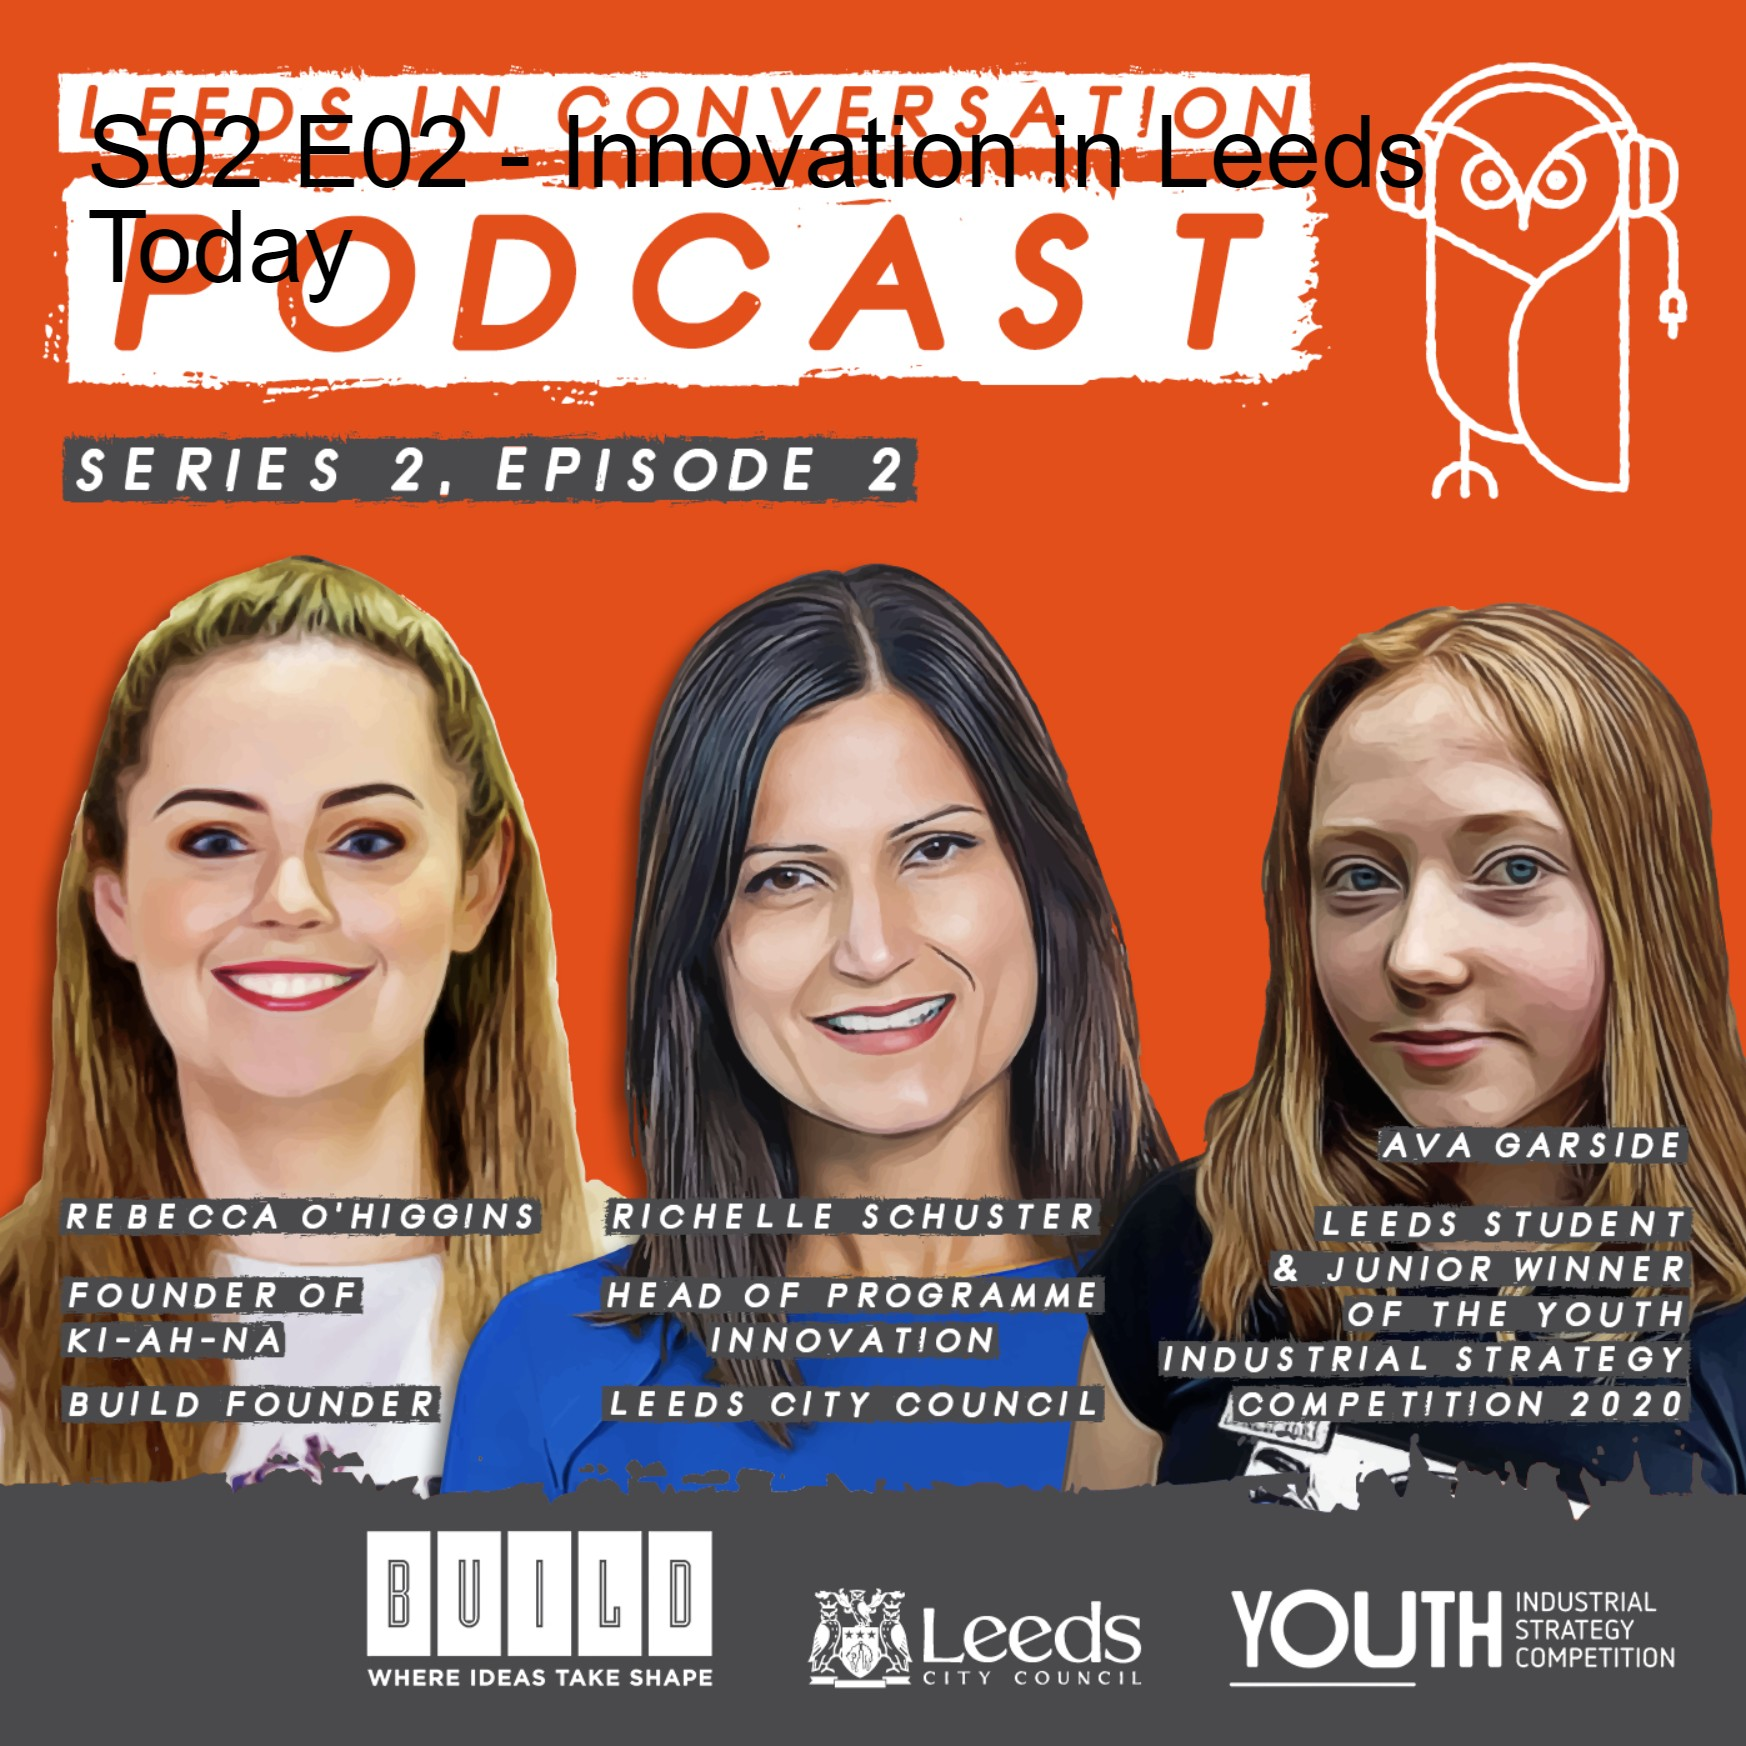 S02 E02 - Innovation in Leeds Today